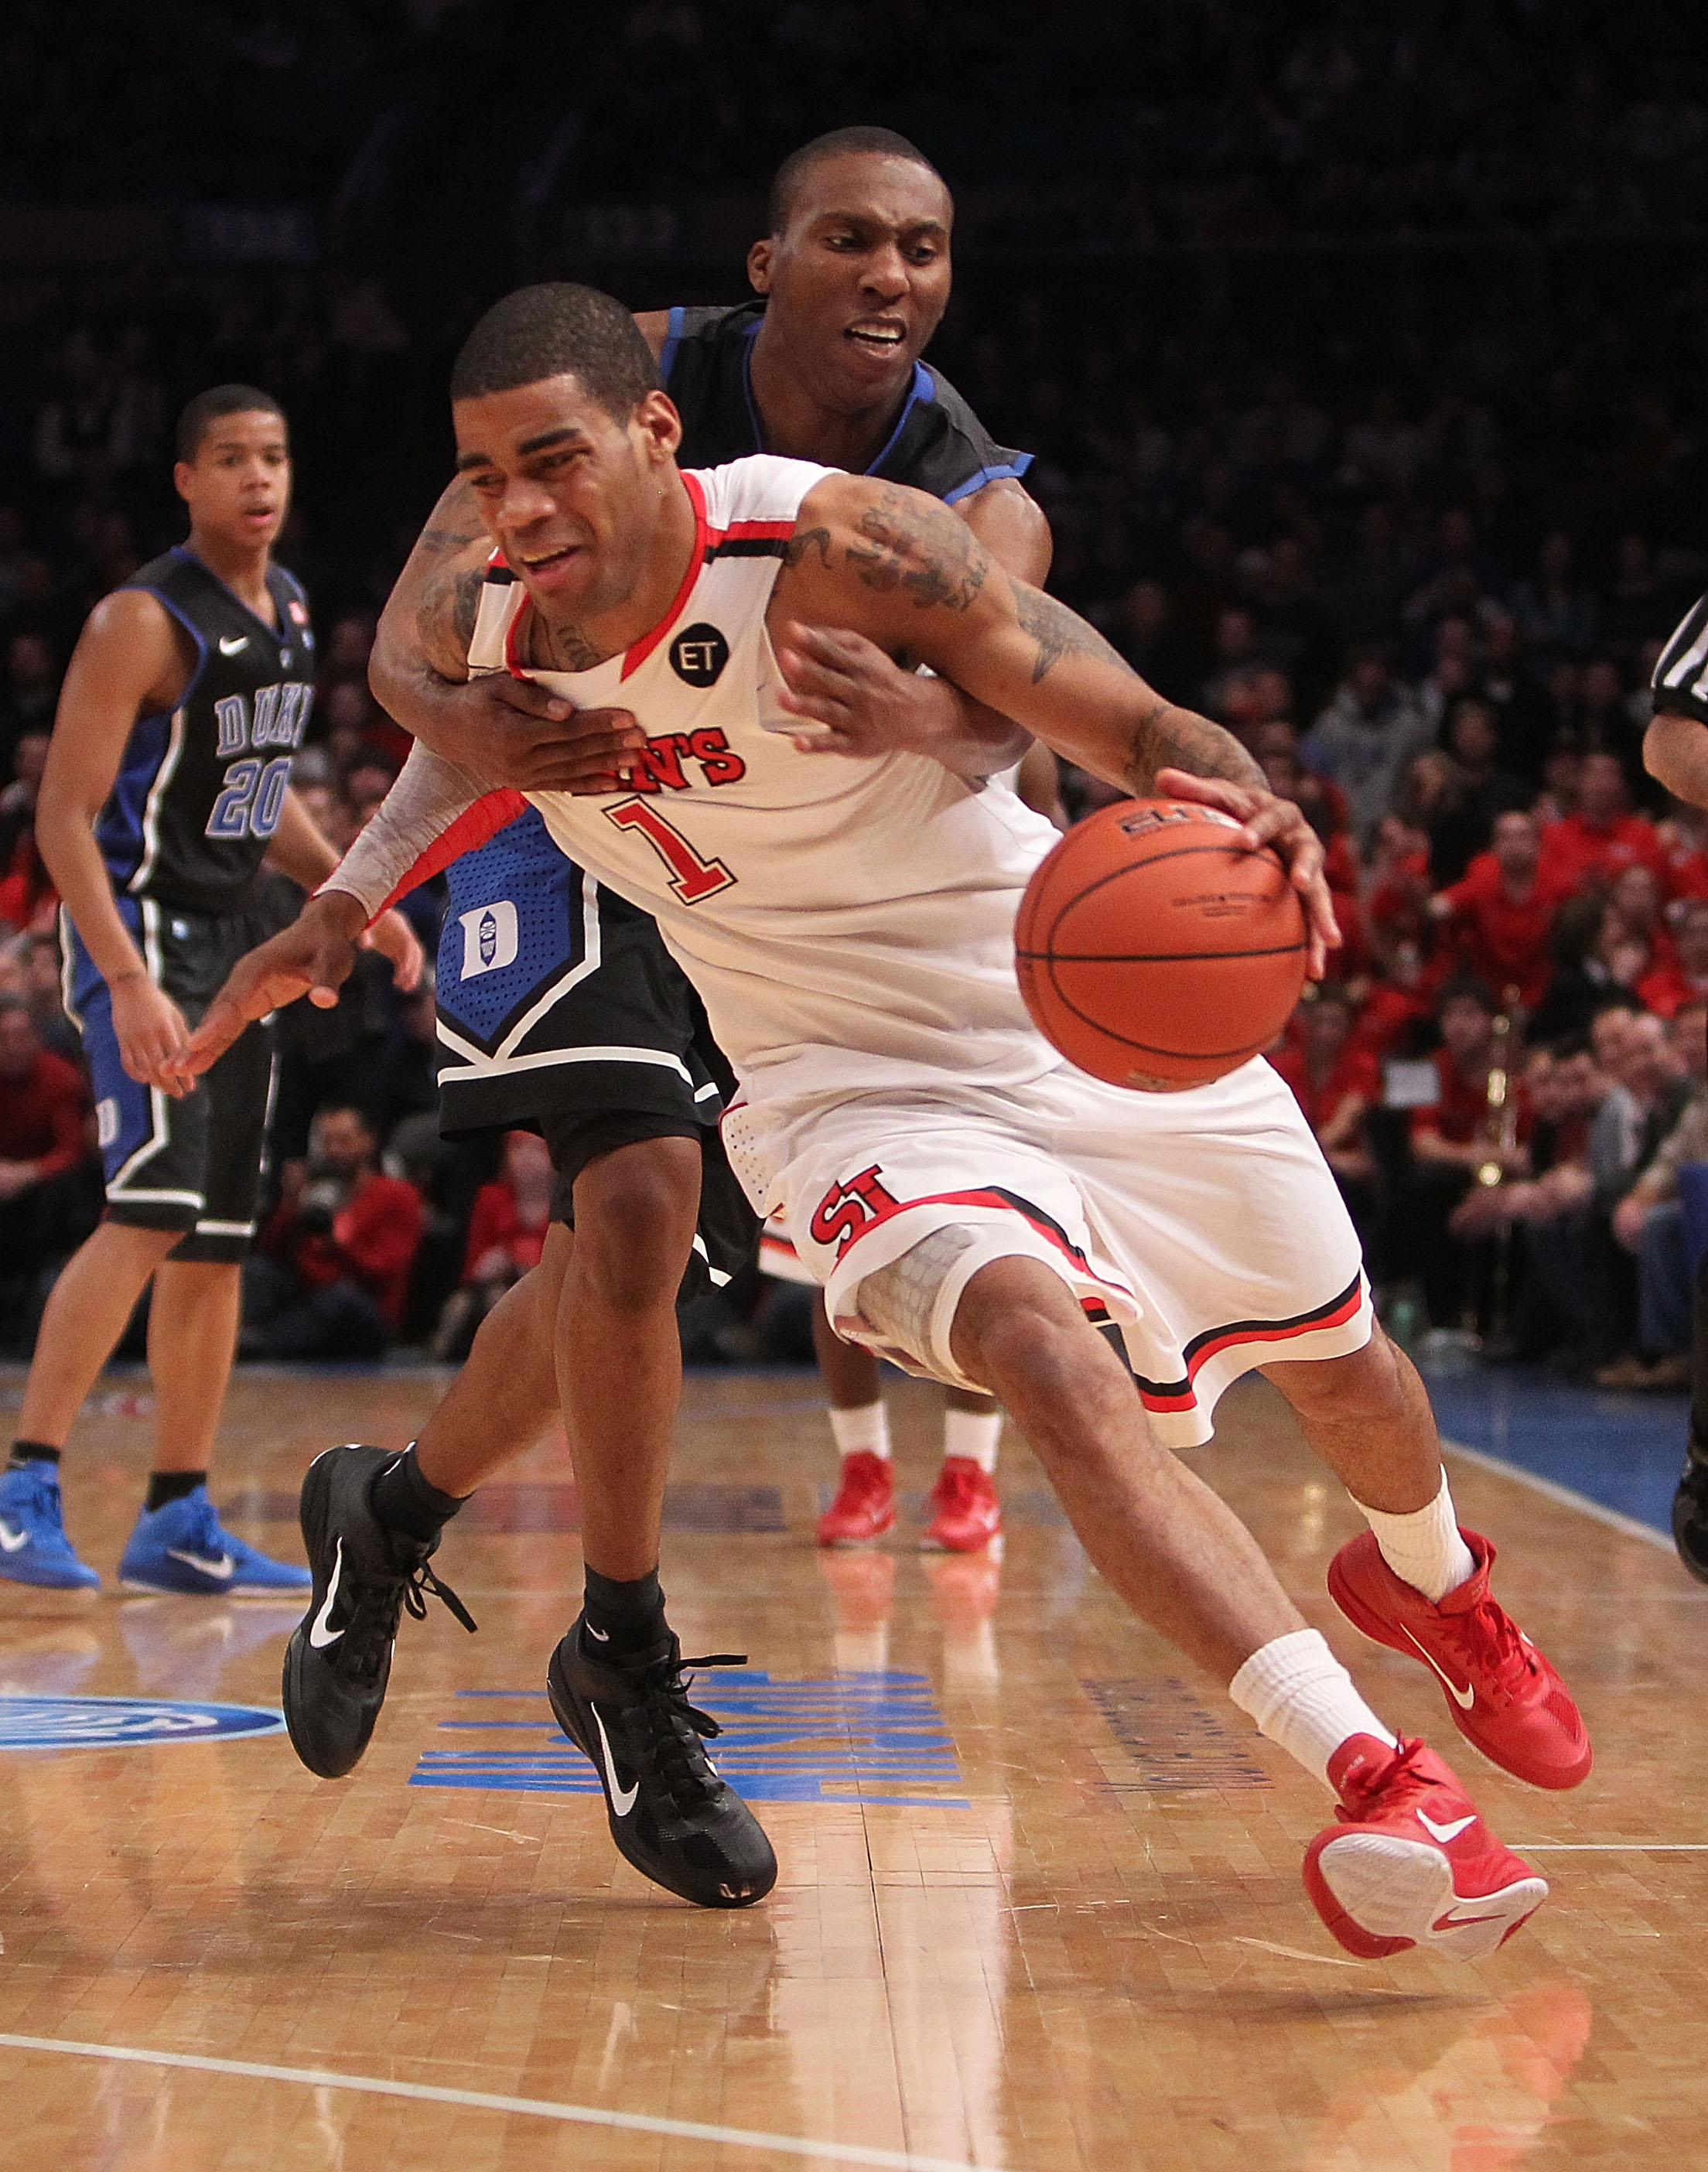 NEW YORK, NY - JANUARY 30:  D.J. Kennedy #1 of the St. John's Red Storm is fouled by Nolan Smith #2 of the Duke Blue Devils  at Madison Square Garden on January 30, 2011 in New York City.  (Photo by Nick Laham/Getty Images)